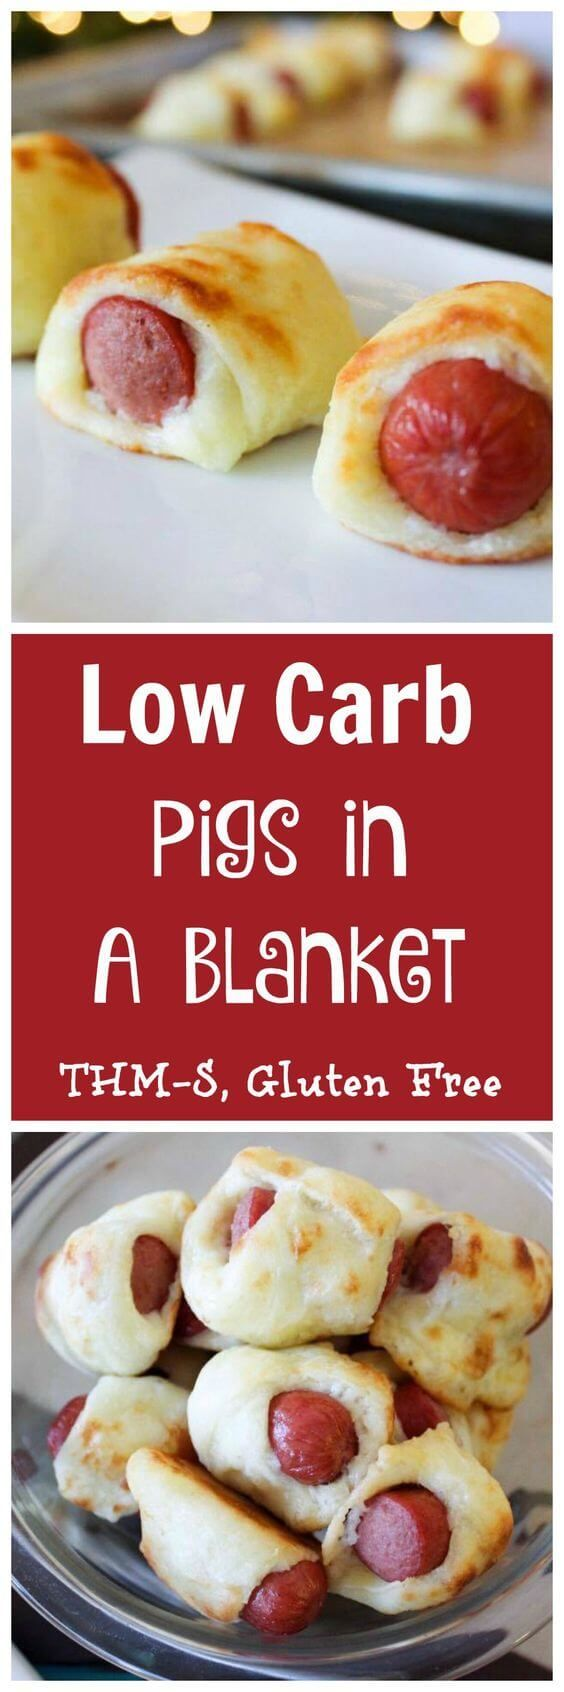 Low carb pigs in a blanket by My Montana Kitchen and other great Low Carb Recipes!!